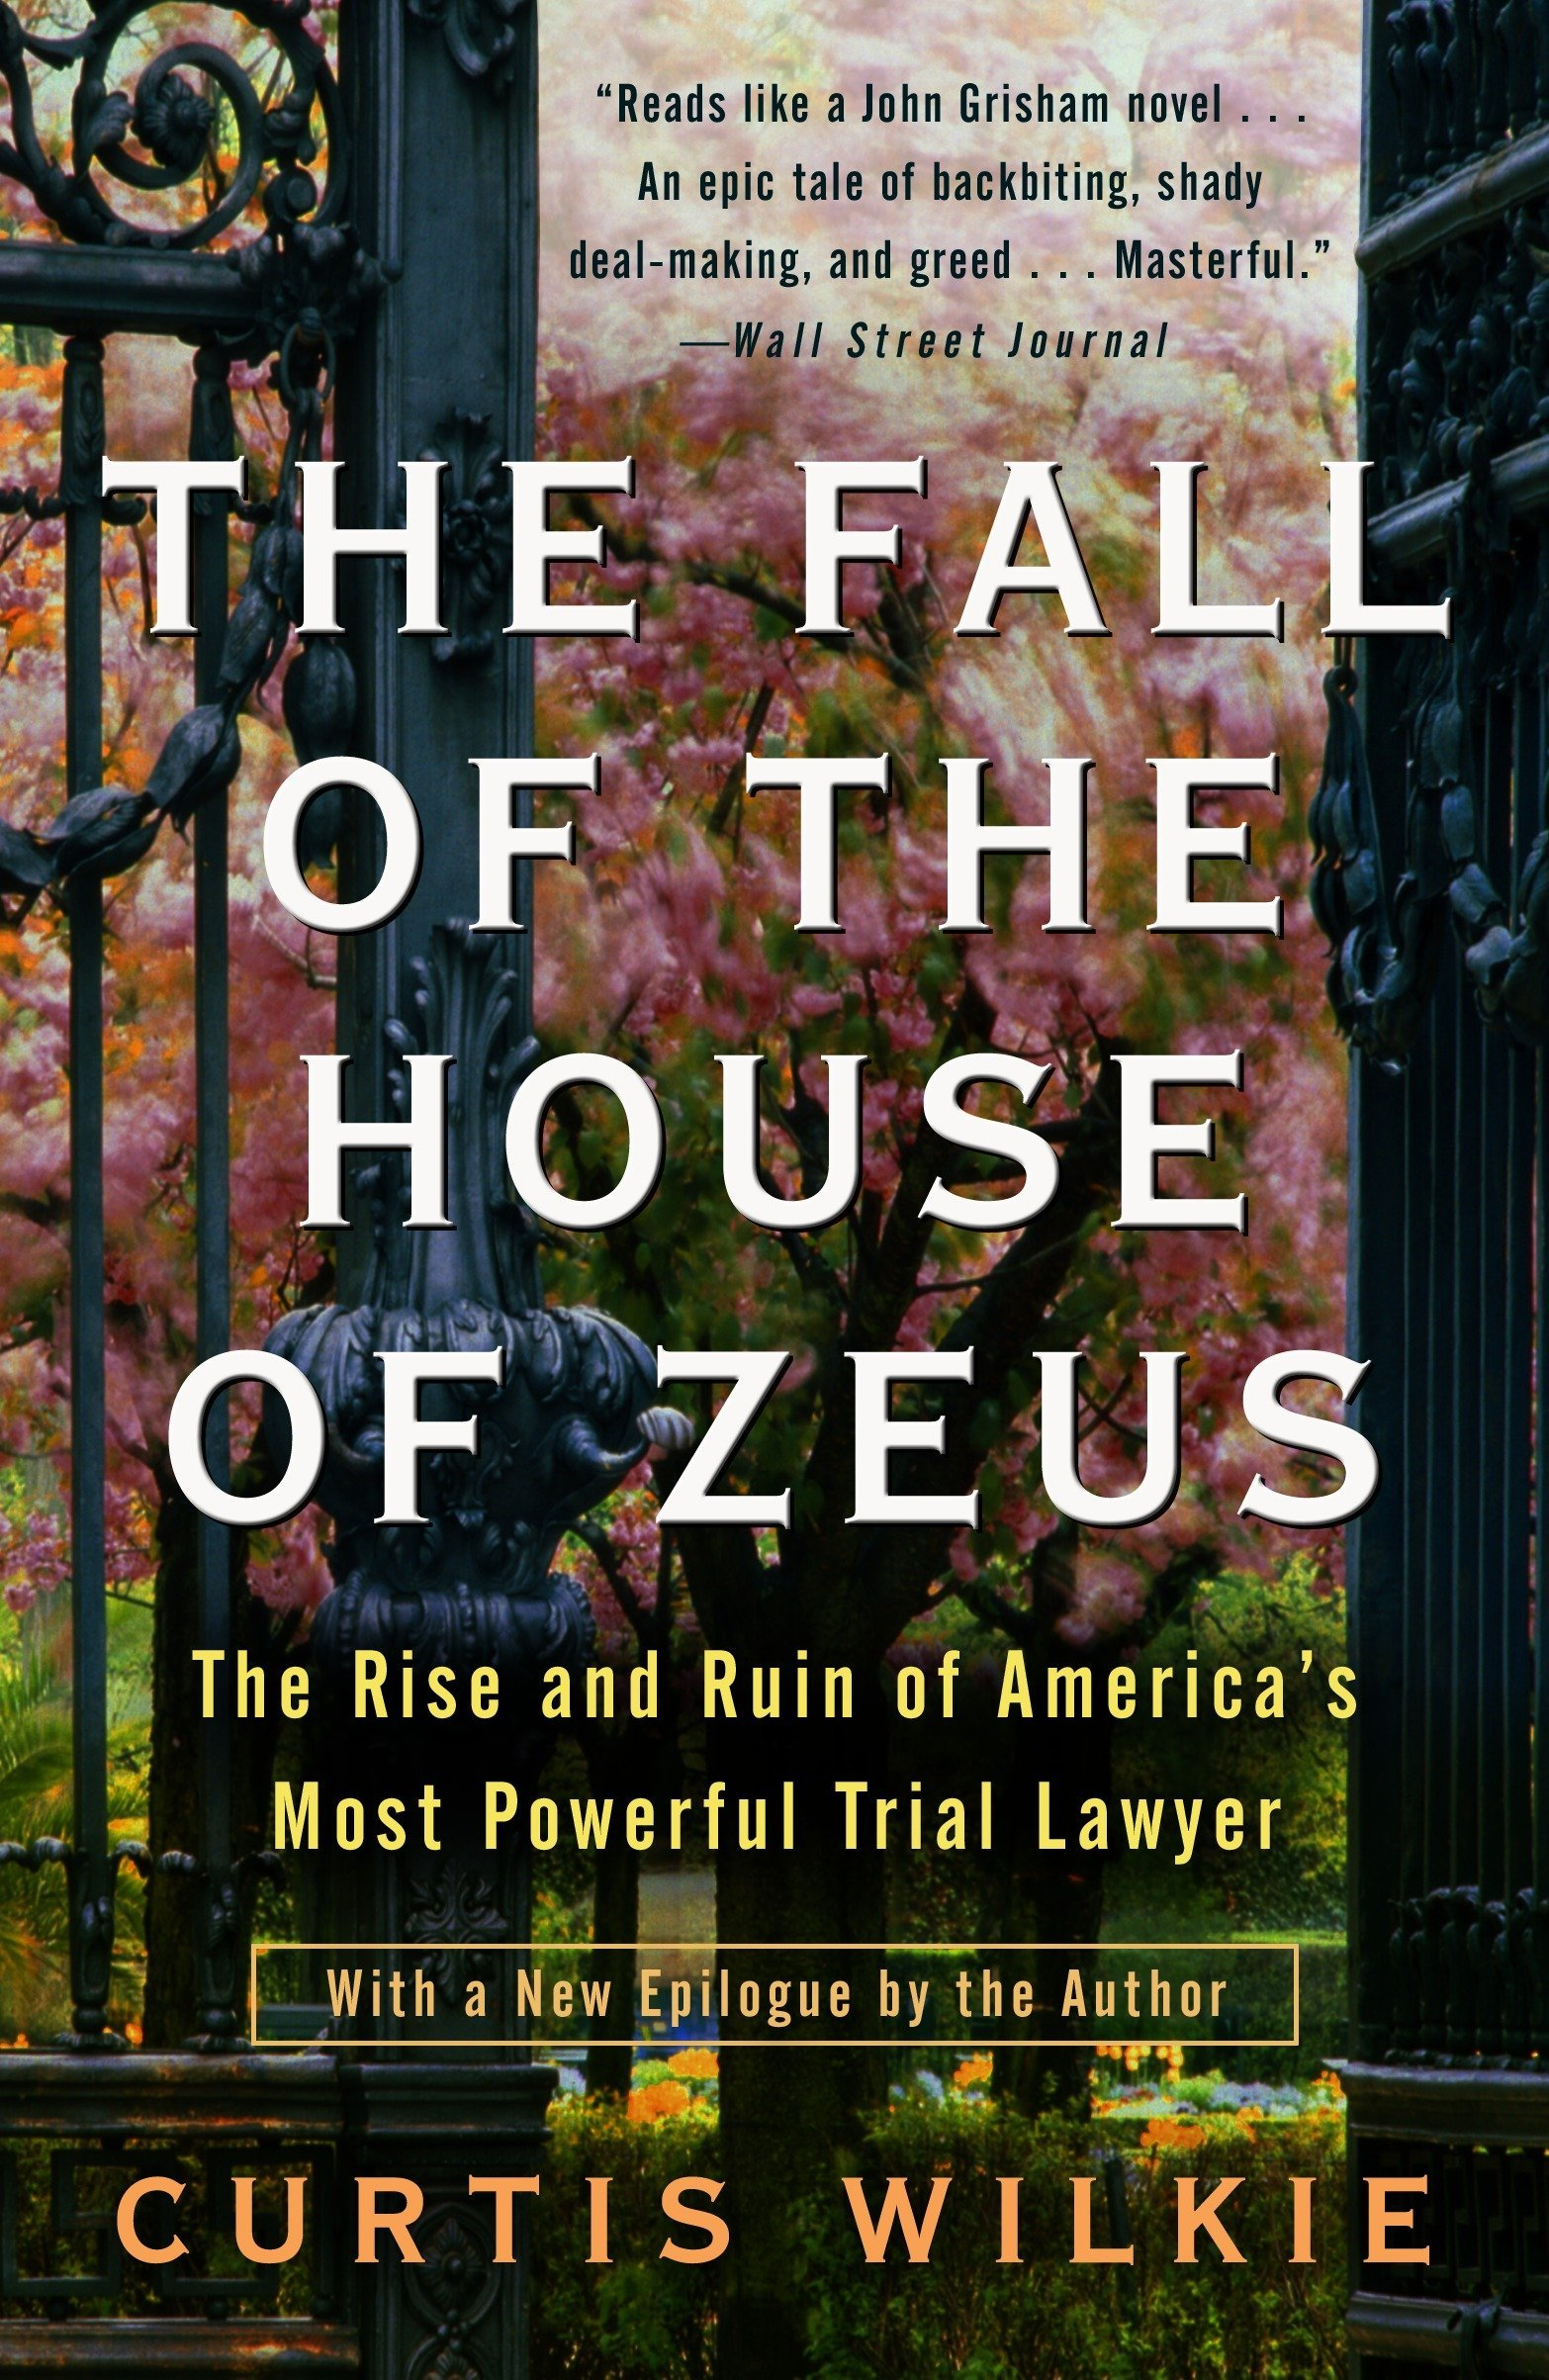 Amazon.com: The Fall of the House of Zeus: The Rise and Ruin of America's  Most Powerful Trial Lawyer (9780307460714): Curtis Wilkie: Books